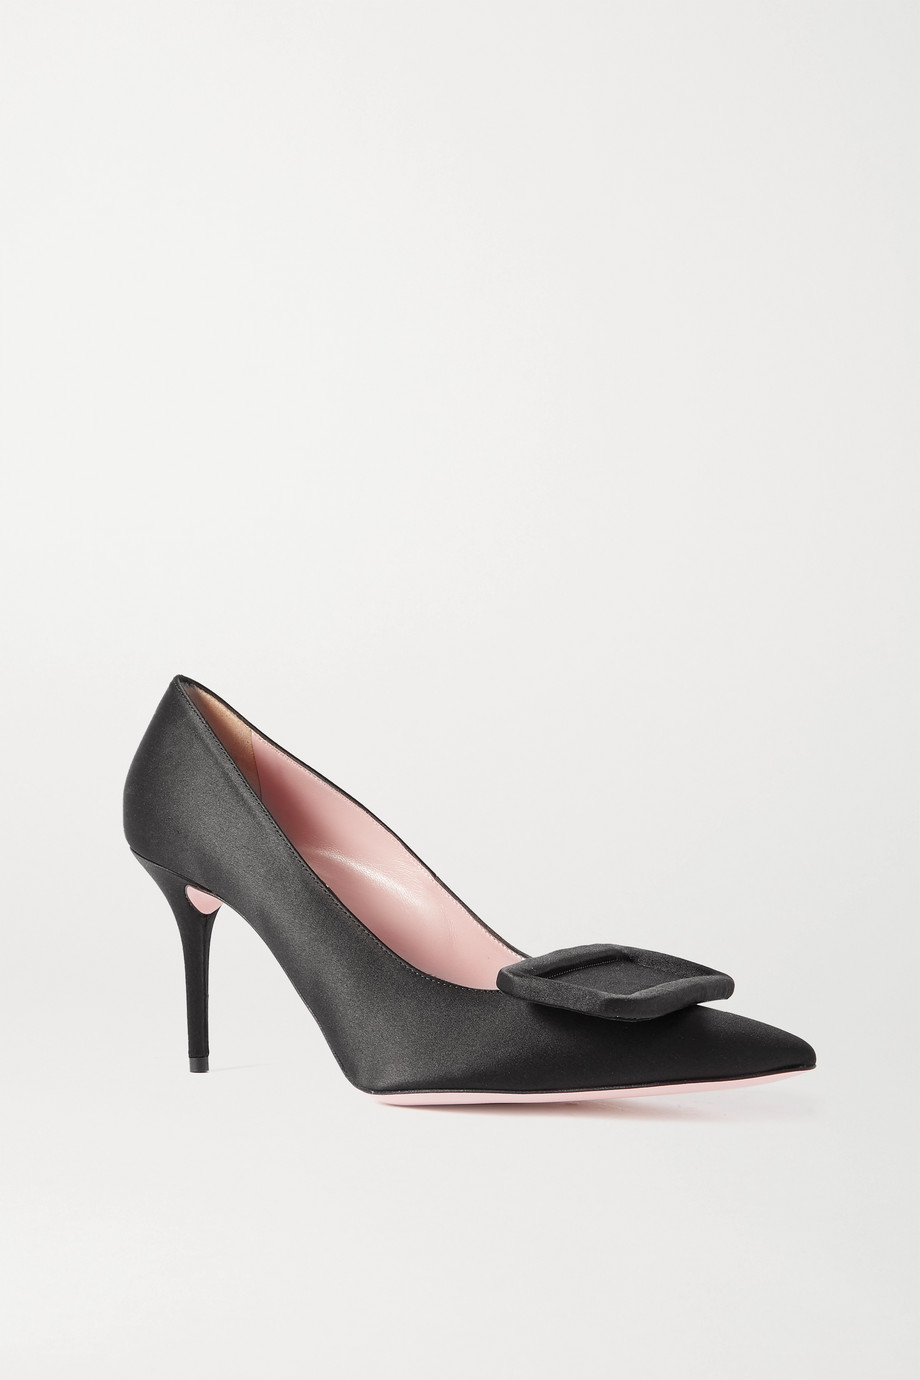 Emilia Wickstead Sophia buckled satin pumps